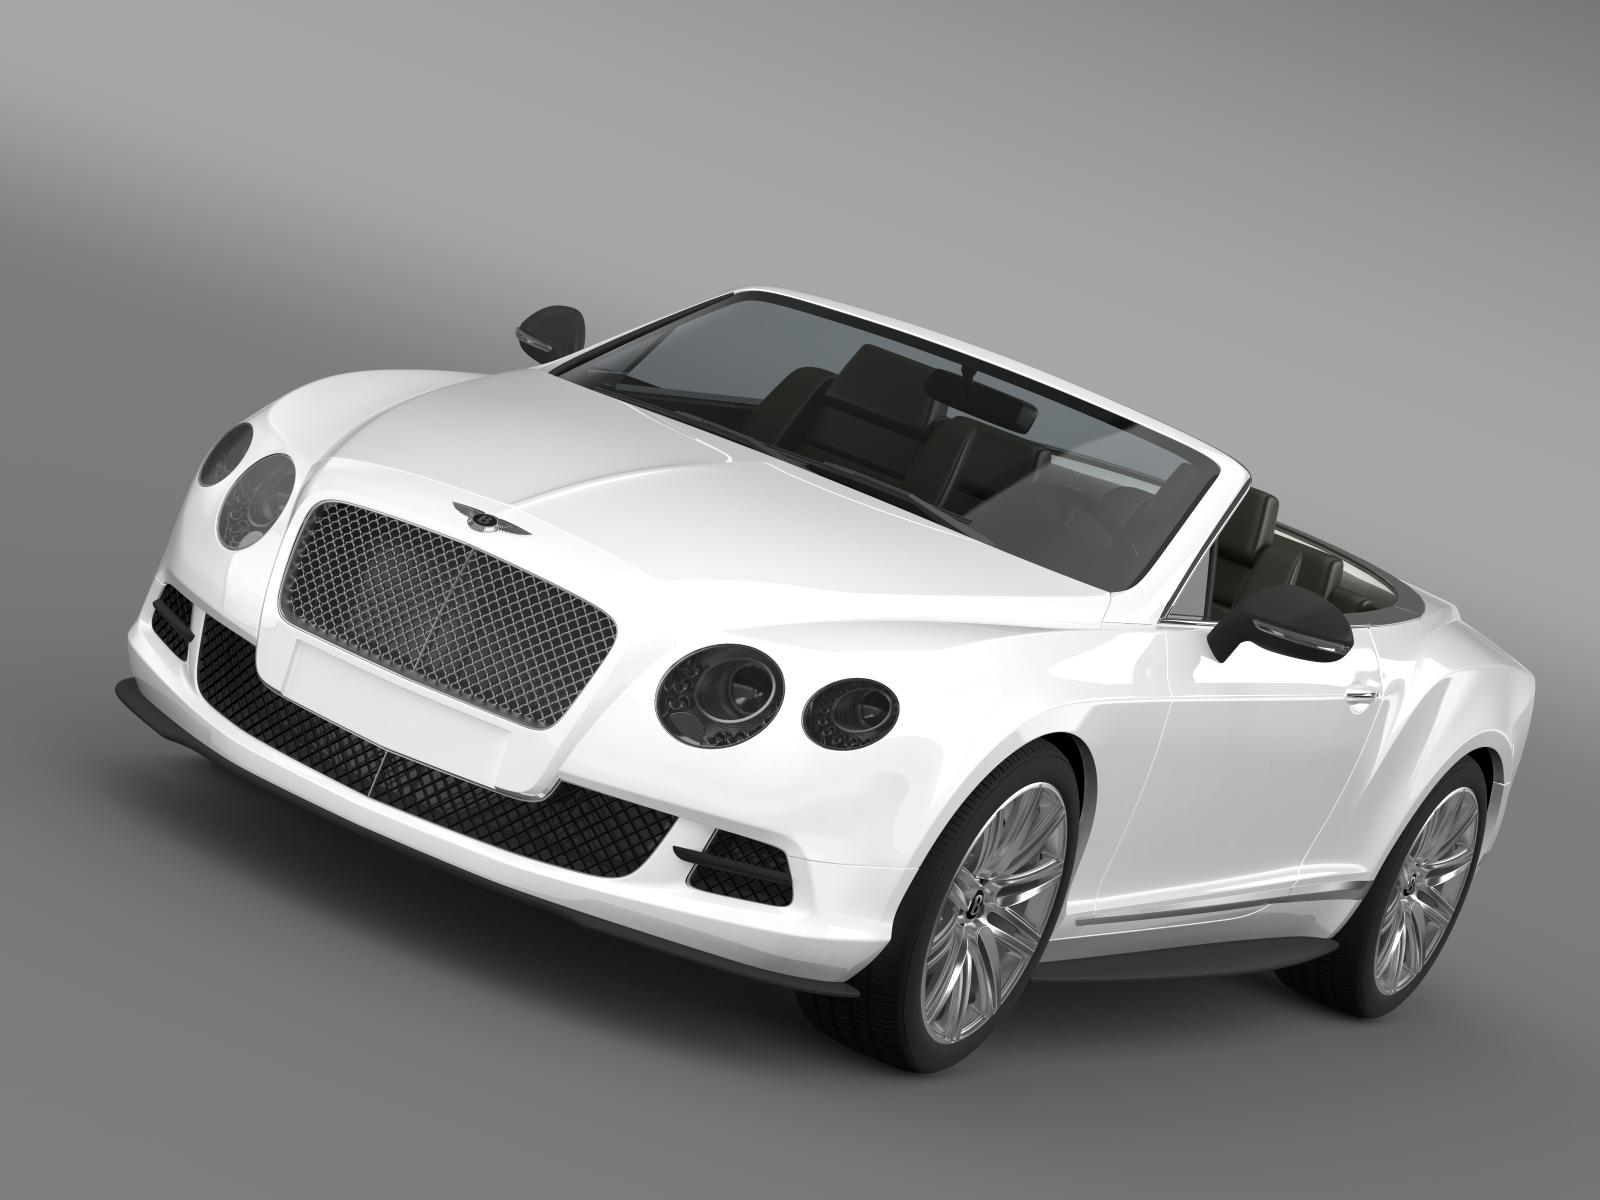 bentley continental gt speed convertible 2012 3d model 3ds max fbx c4d lwo ma mb hrc xsi obj 163846